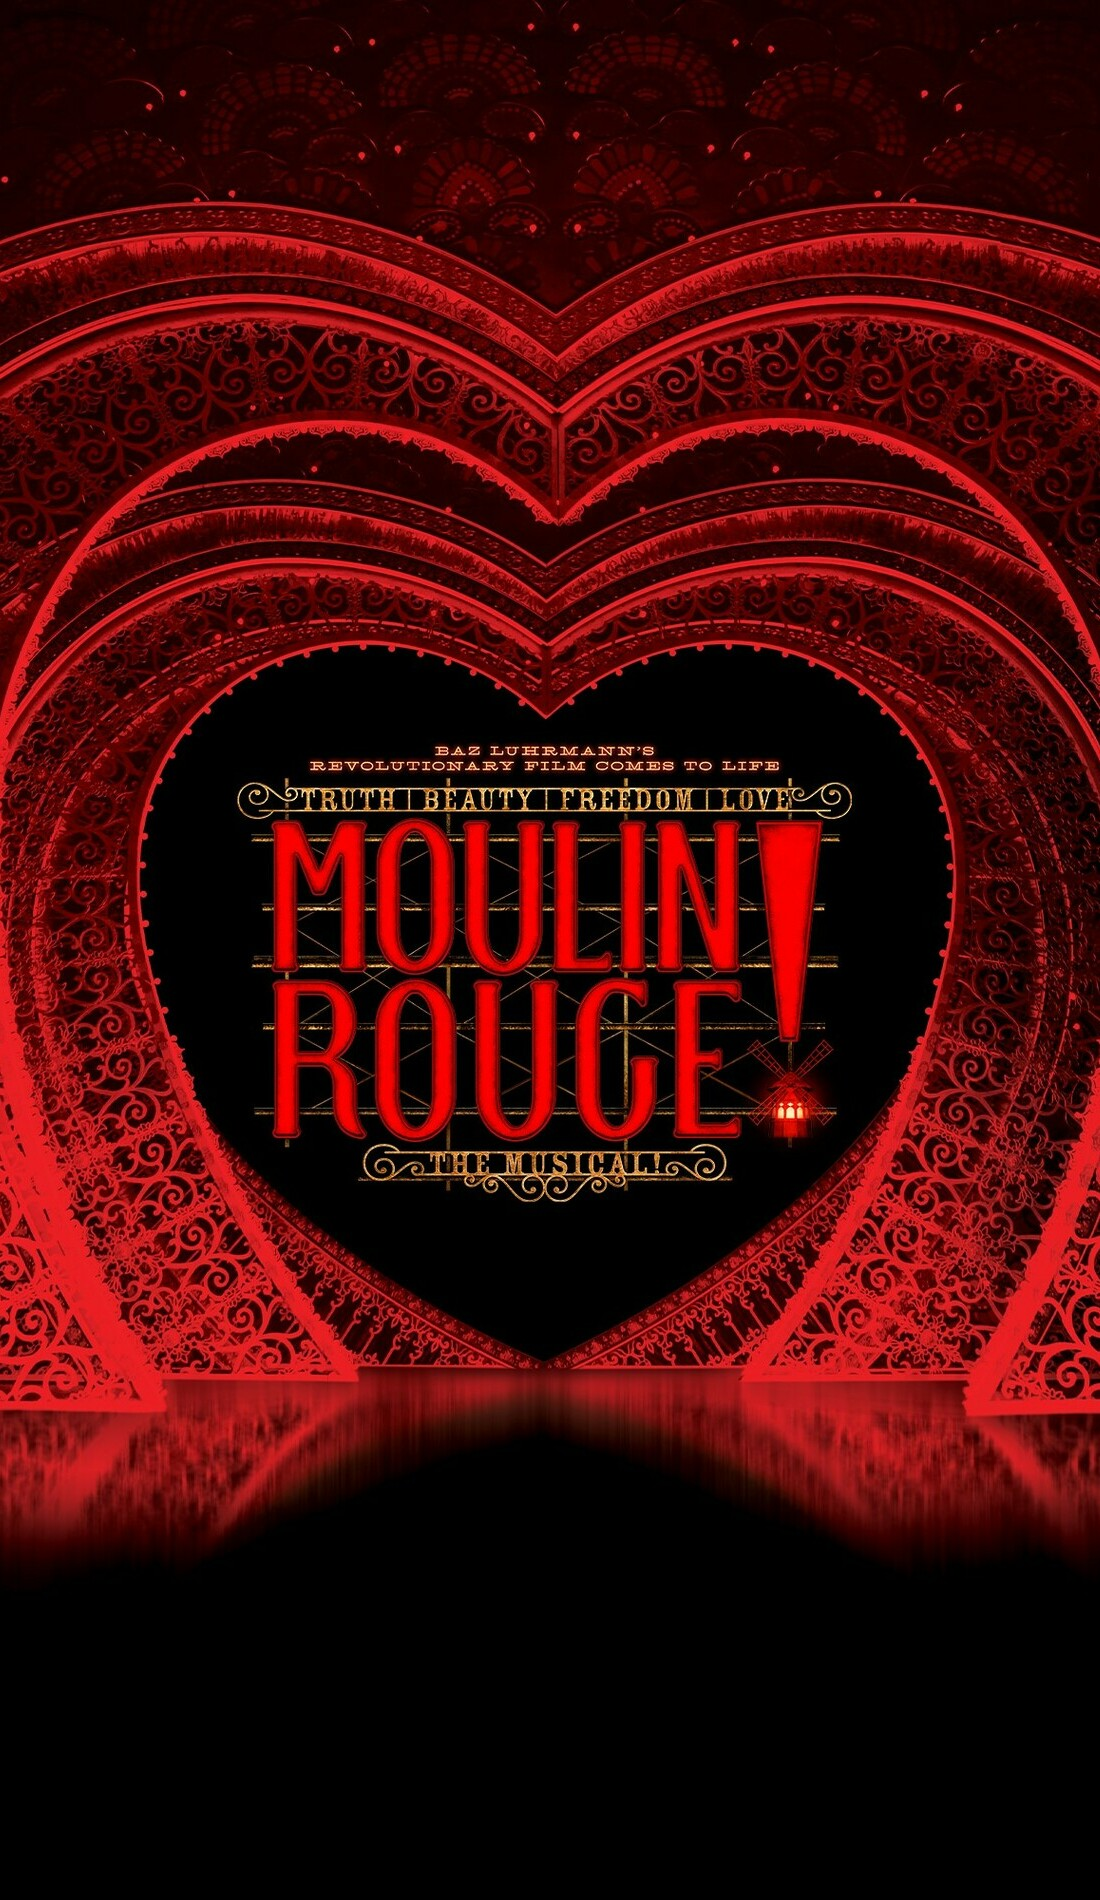 A Moulin Rouge! The Musical live event